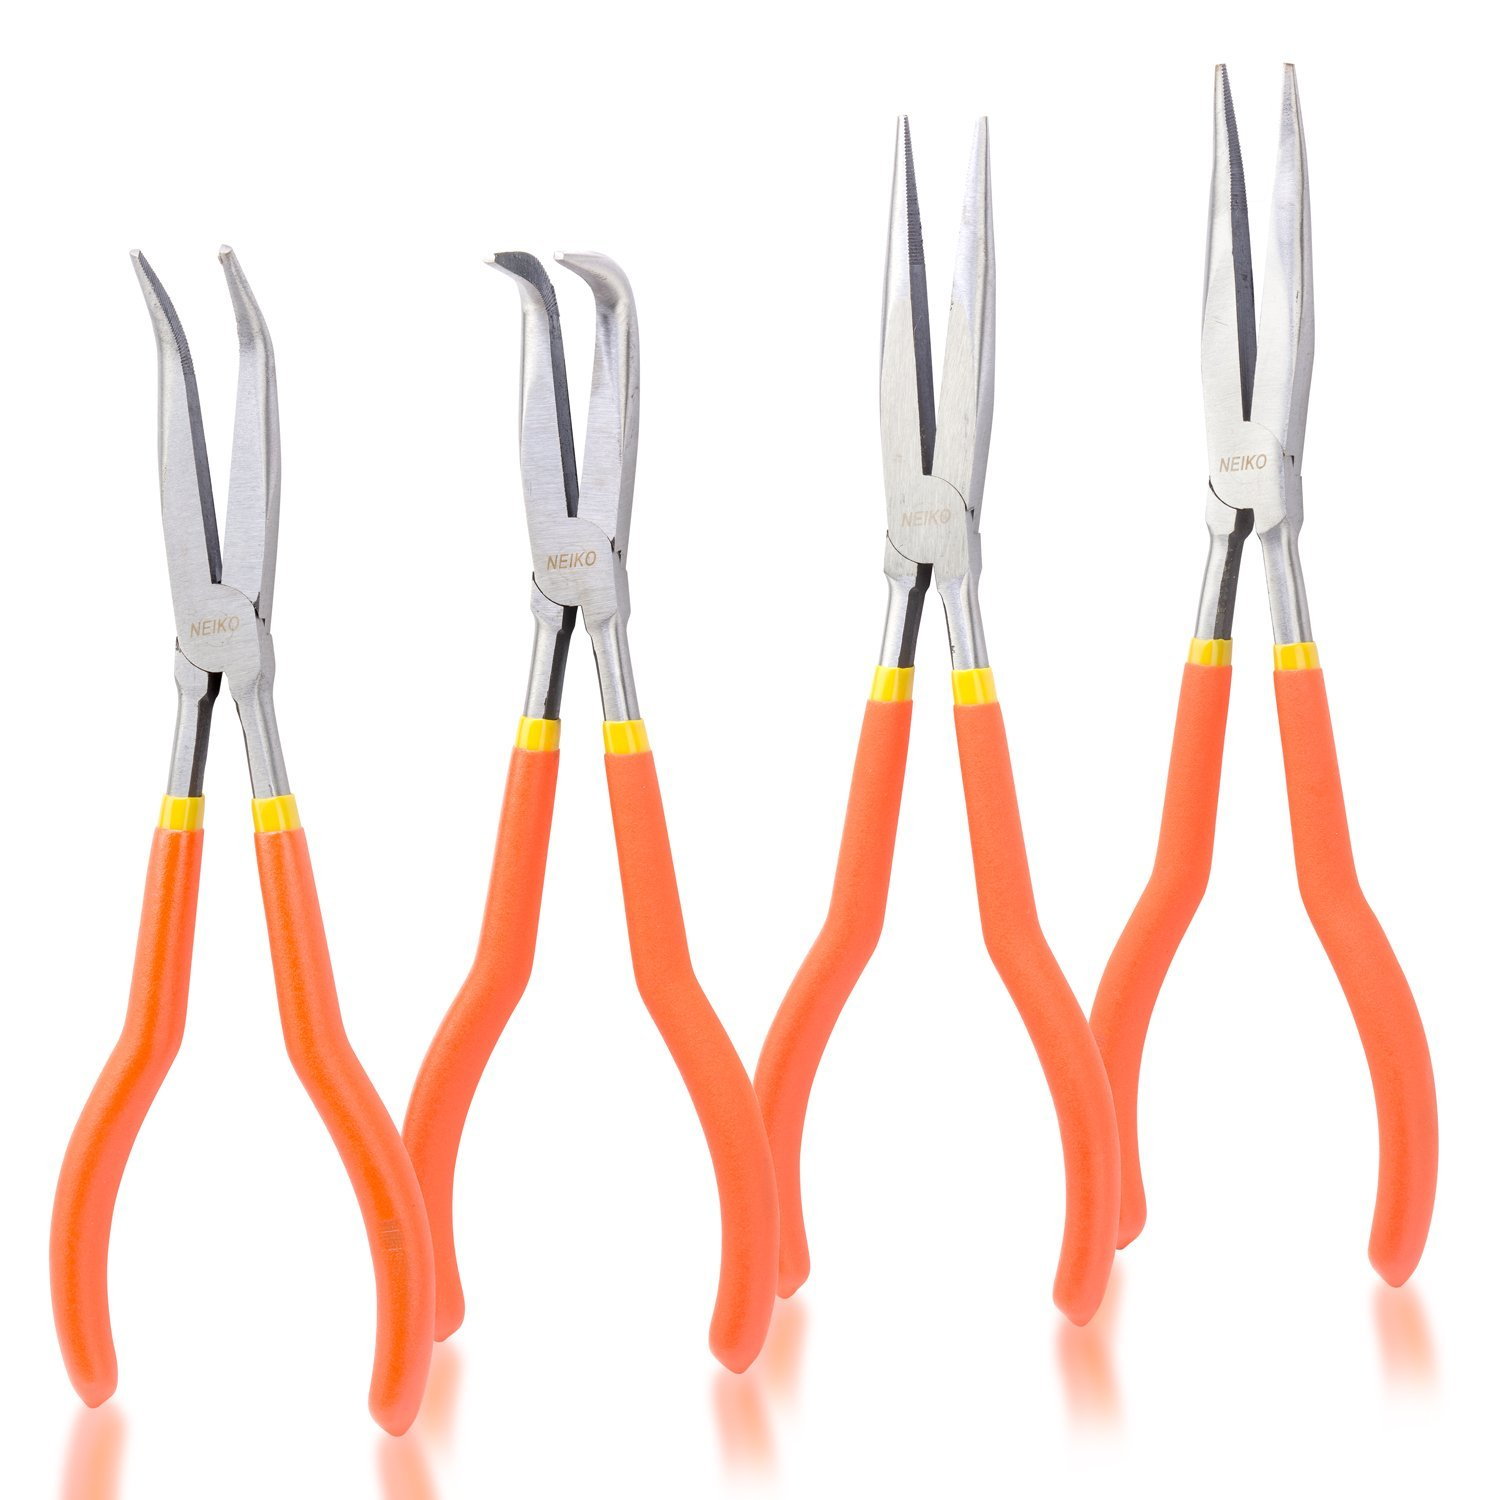 Neiko 02105A 11'' Long Nose Plier Kit with Soft Grip, 4 Piece by Neiko